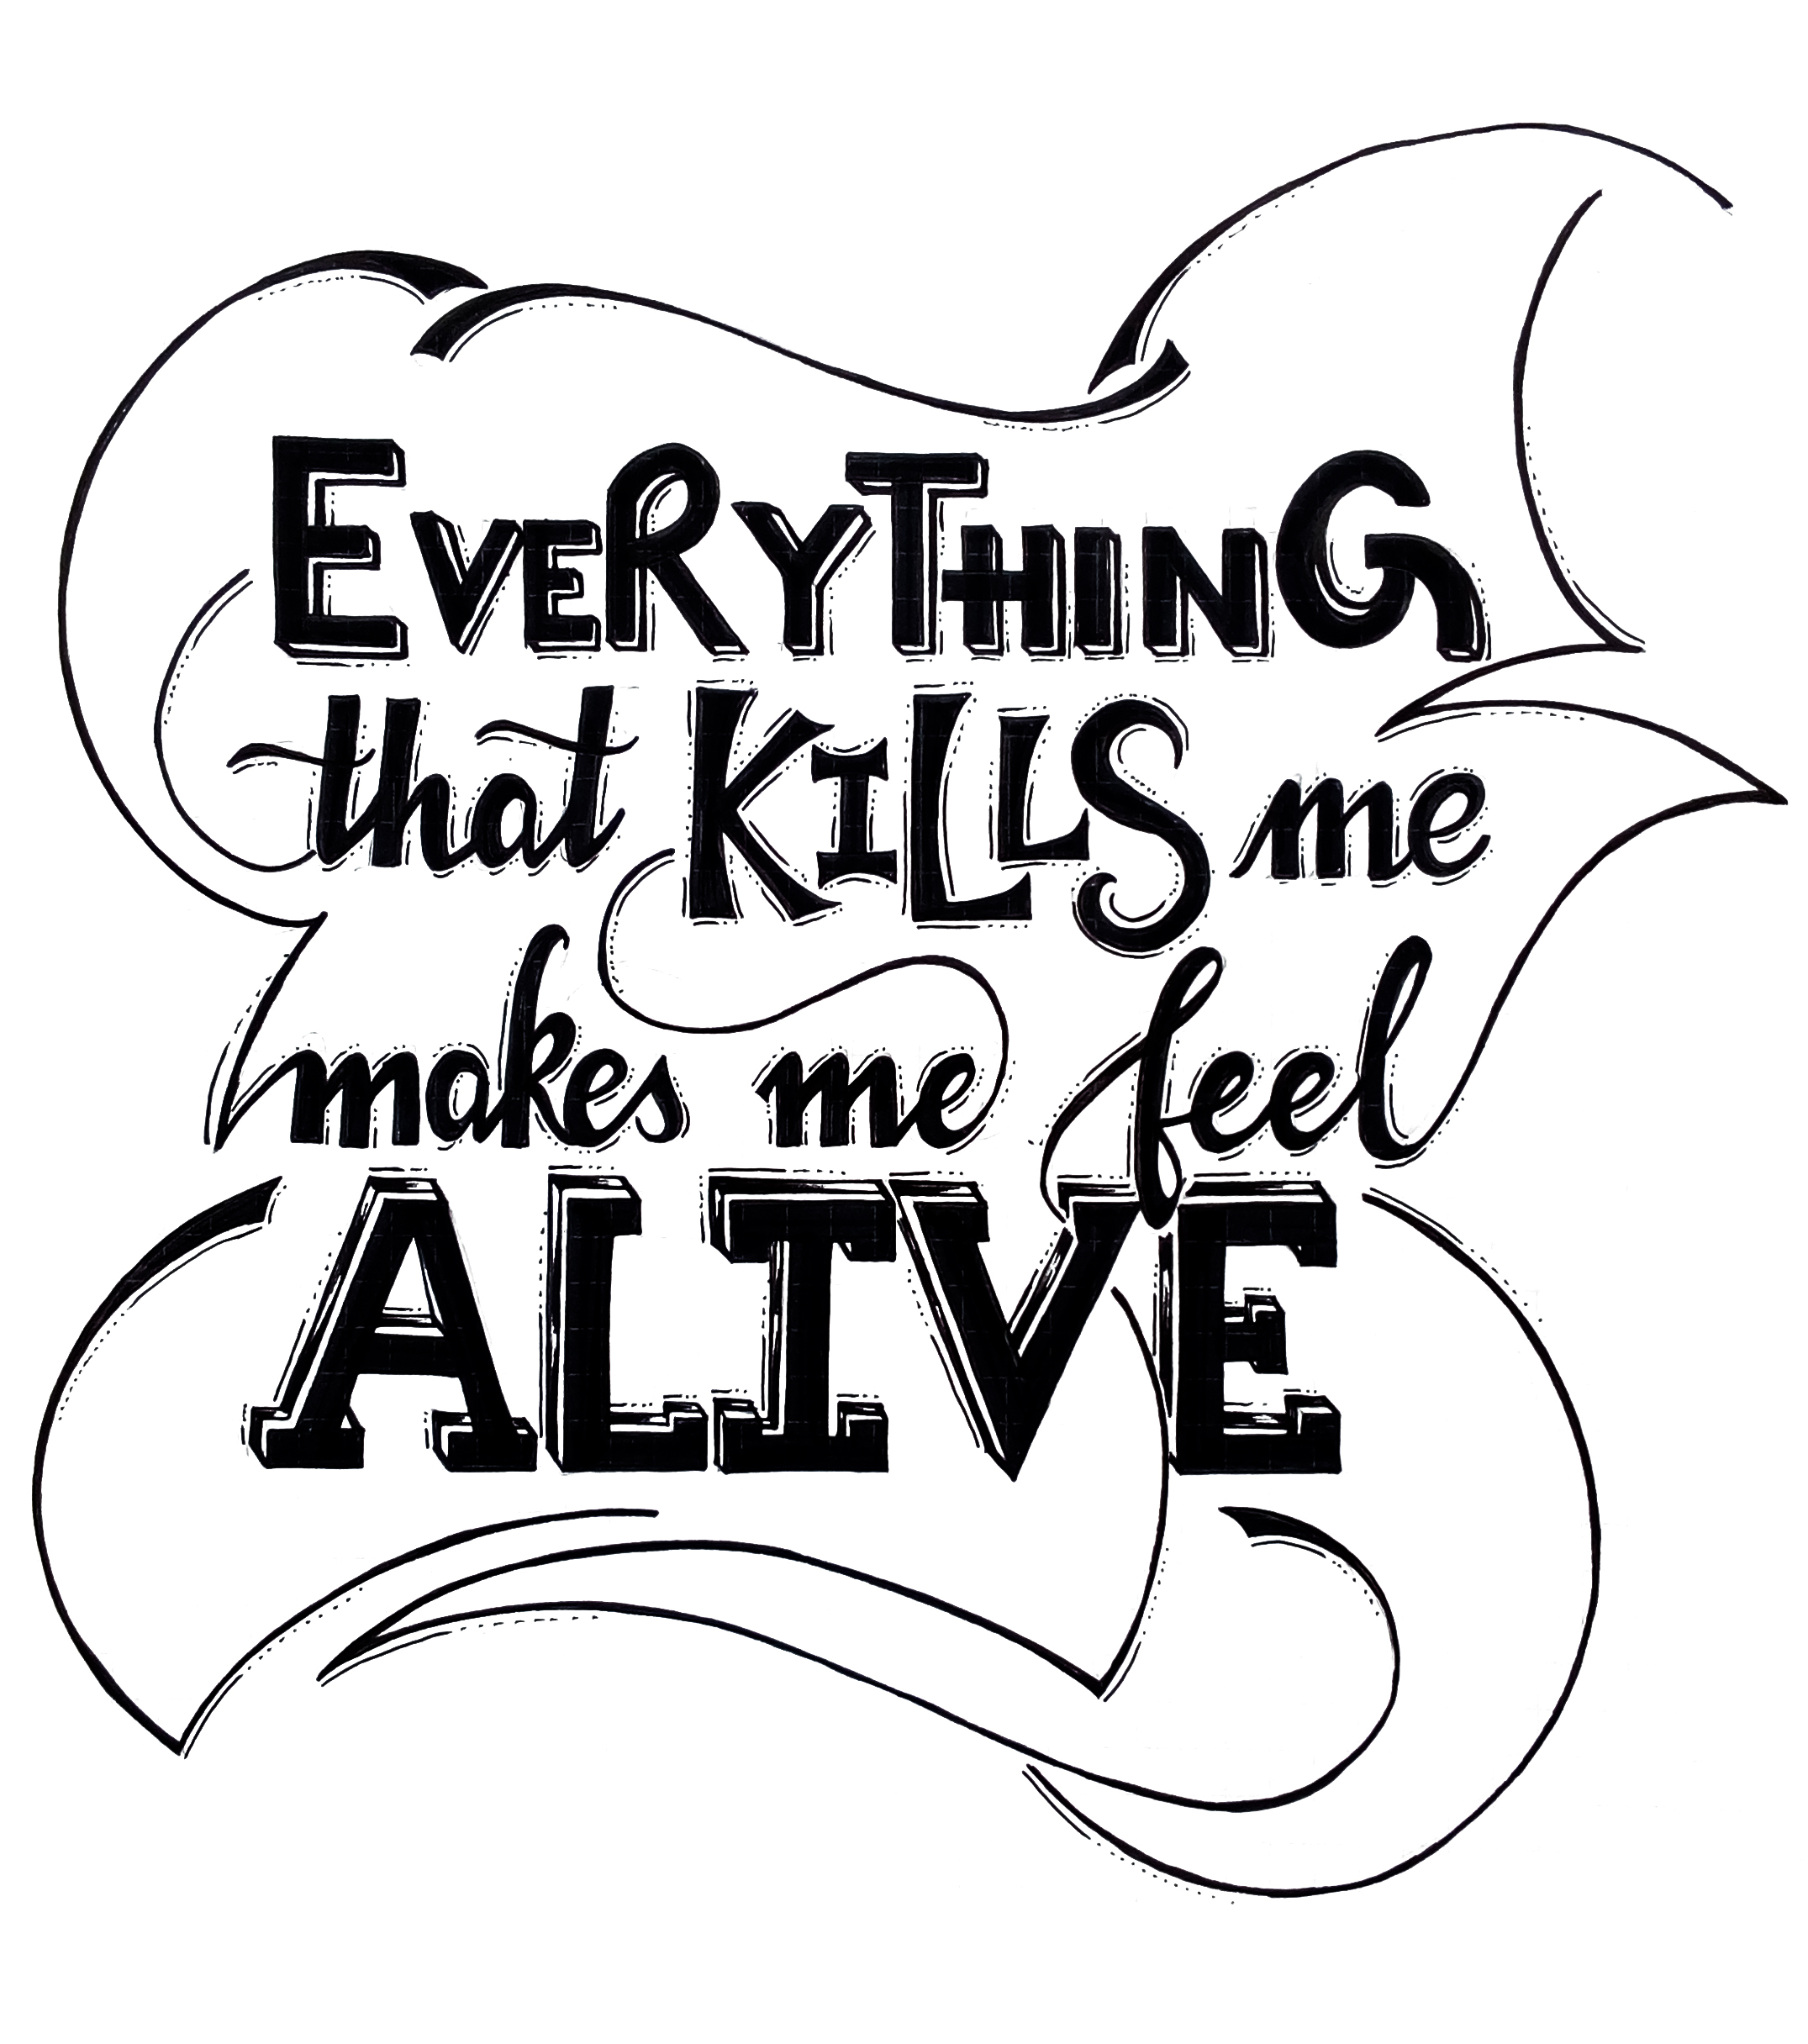 Everything that kills me makes me feel alive - Quoted from a song